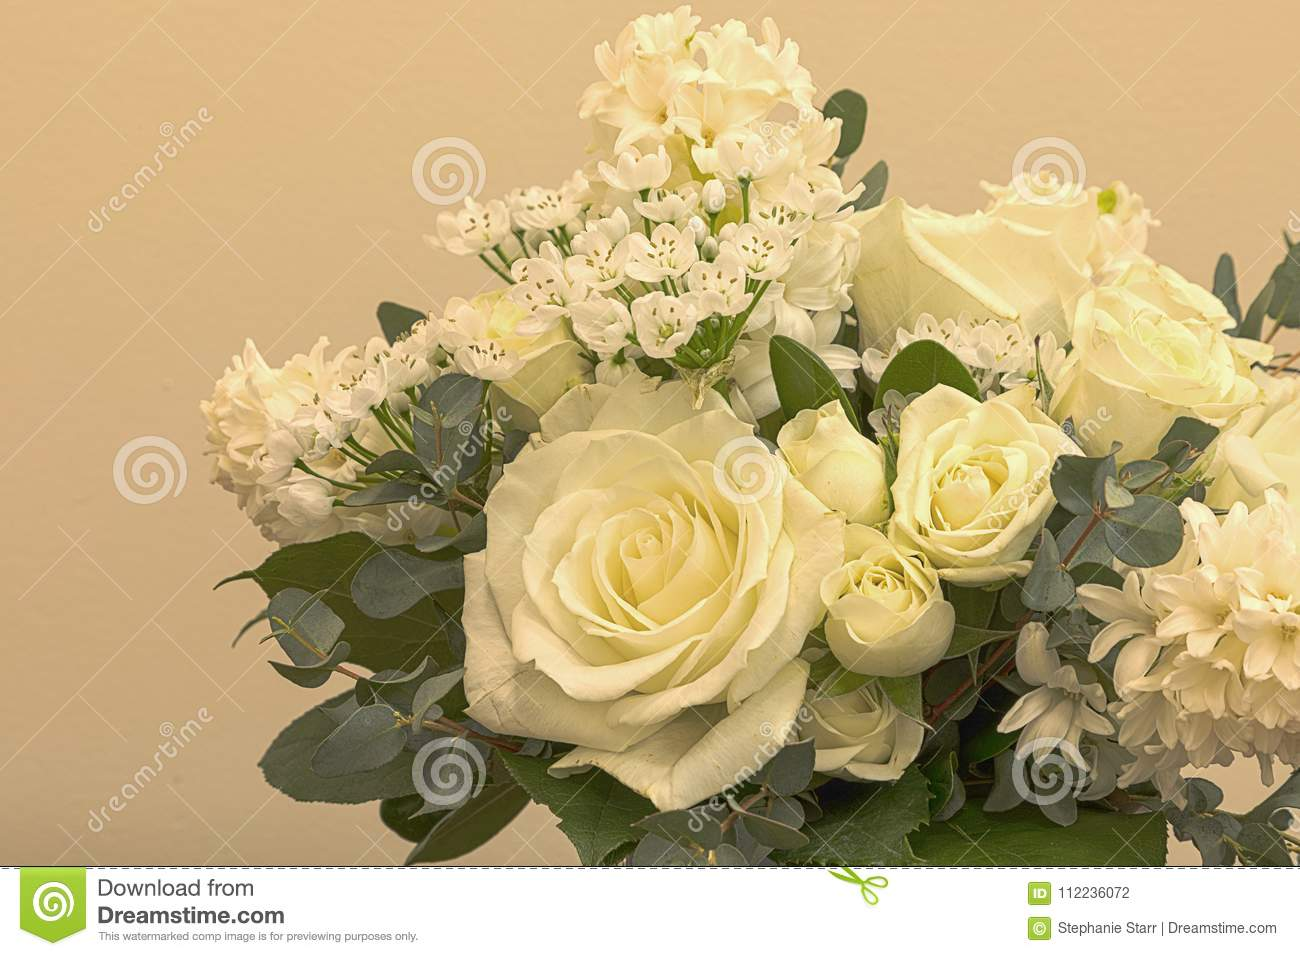 White wedding bouquet of flowers including roses stock photo image download comp izmirmasajfo